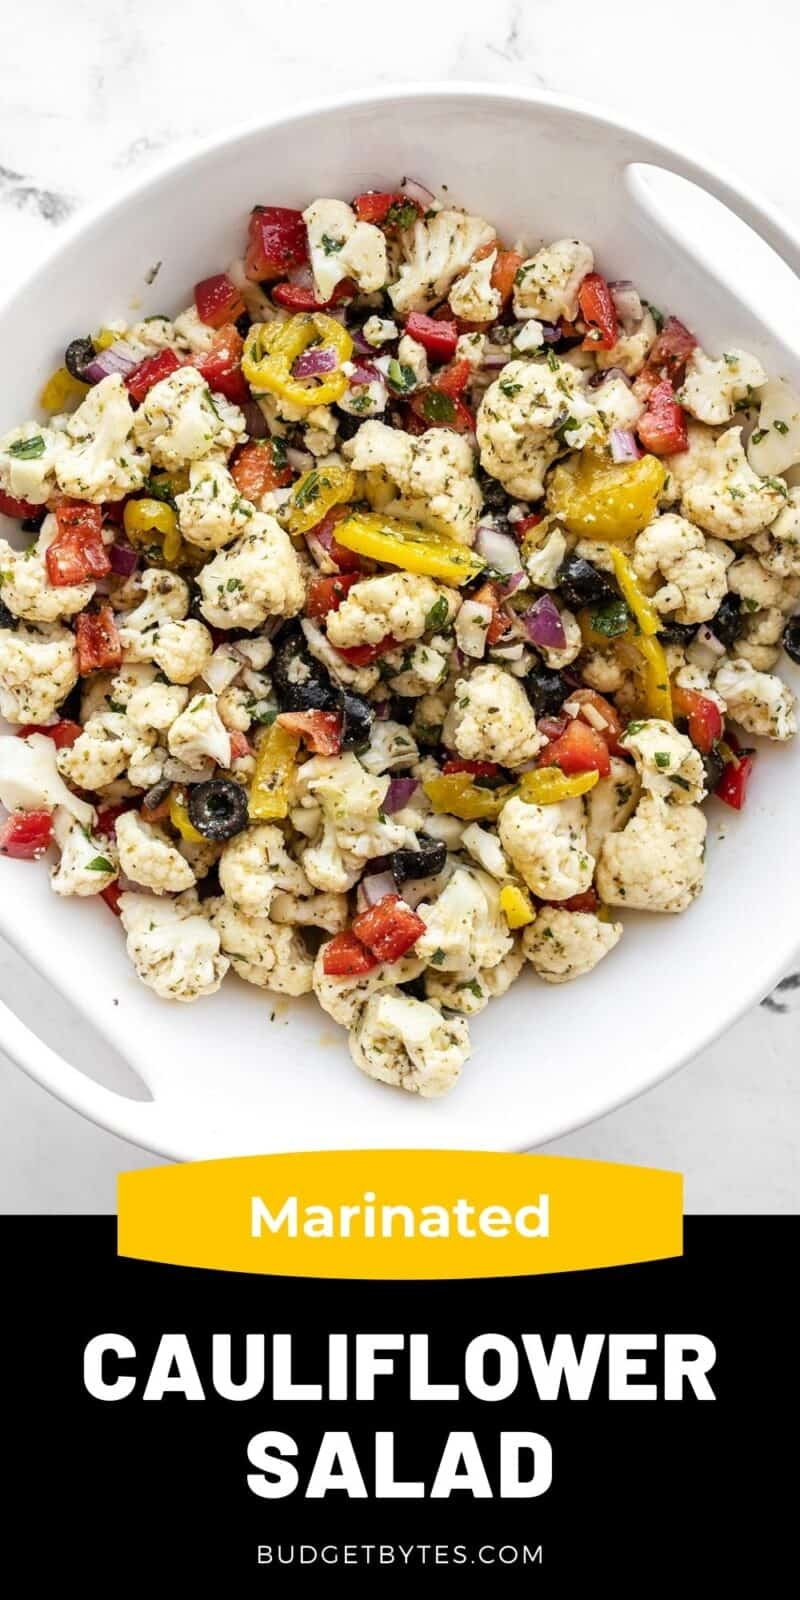 marinated cauliflower salad in a bowl, title text at the bottom